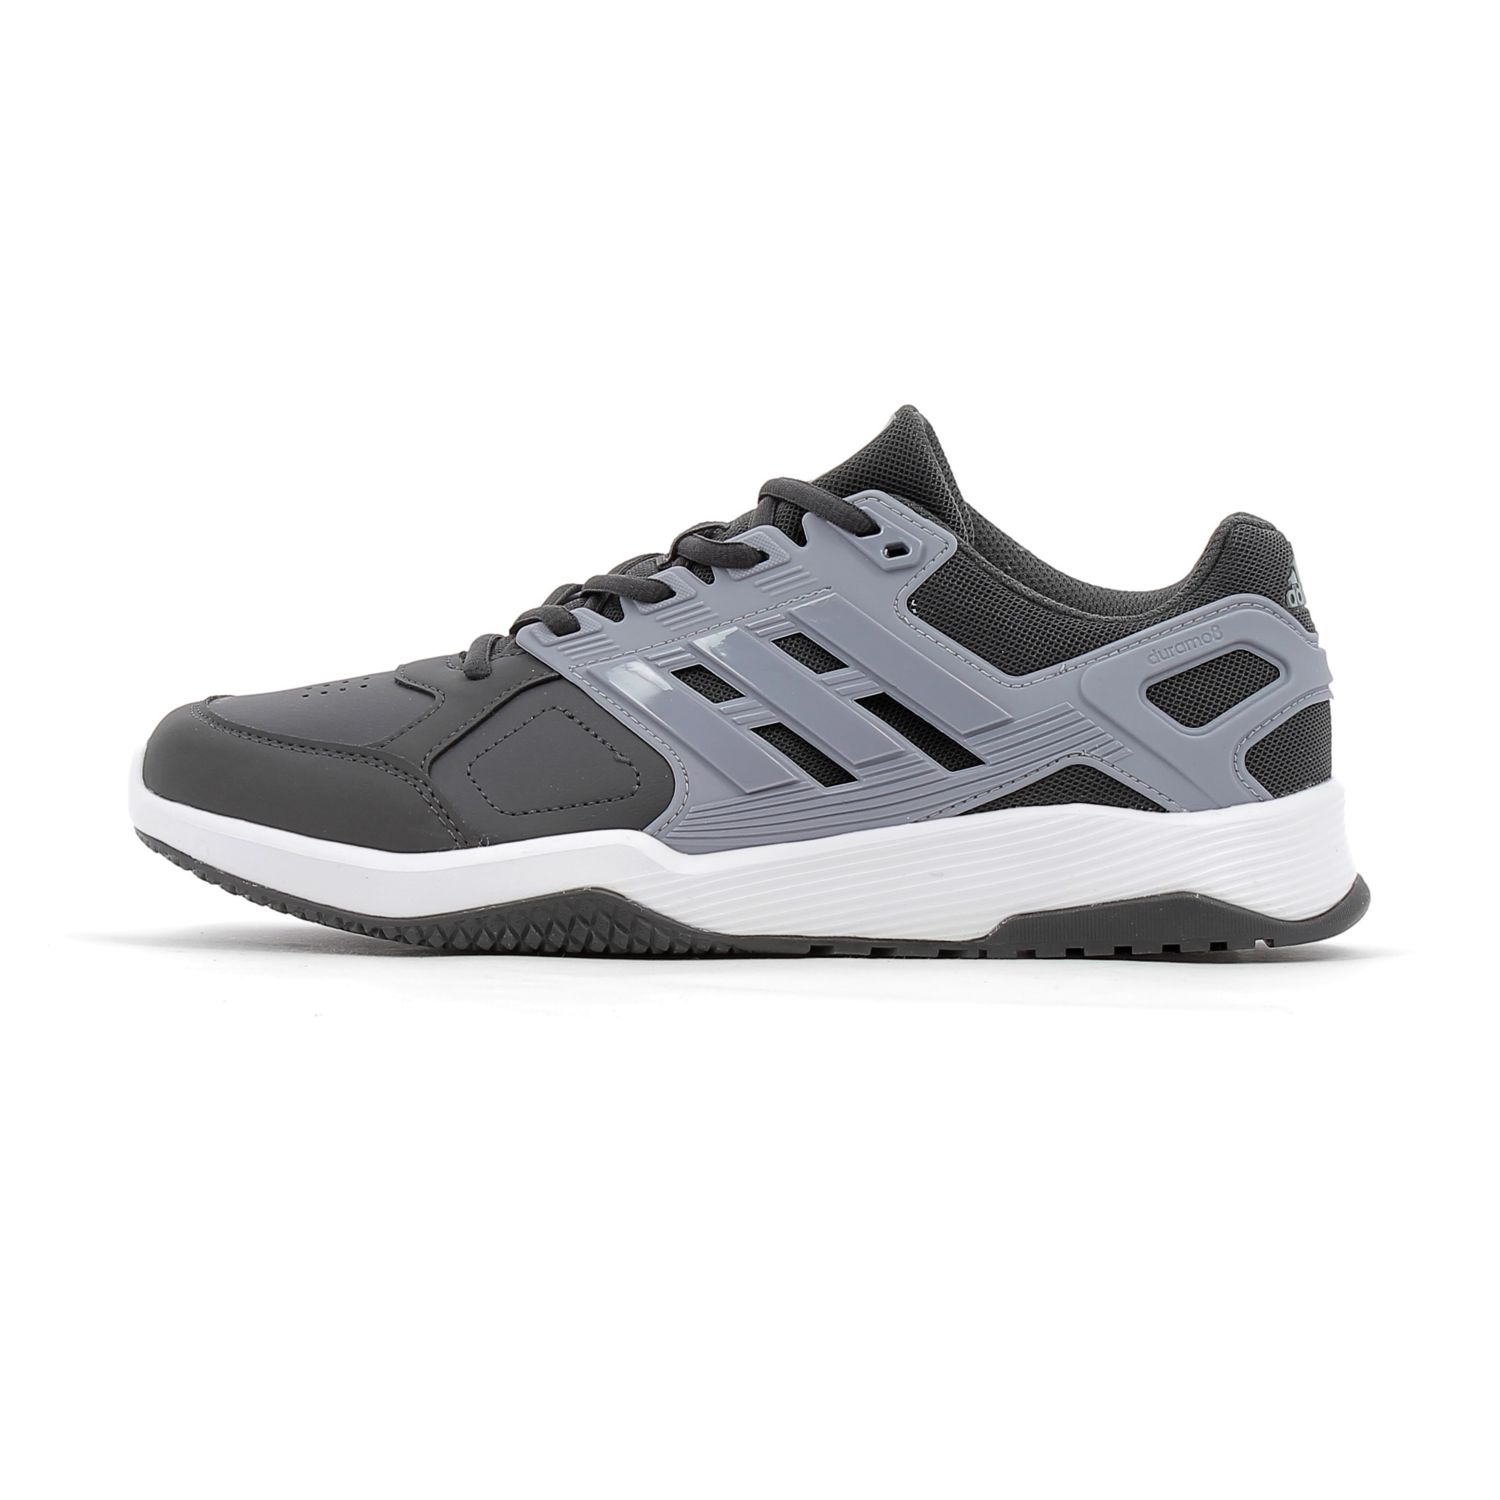 Adidas performance - Chaussures running Duramo 8 Trainer Gris - 45 1/3 - pas cher Achat / Vente Chaussures running